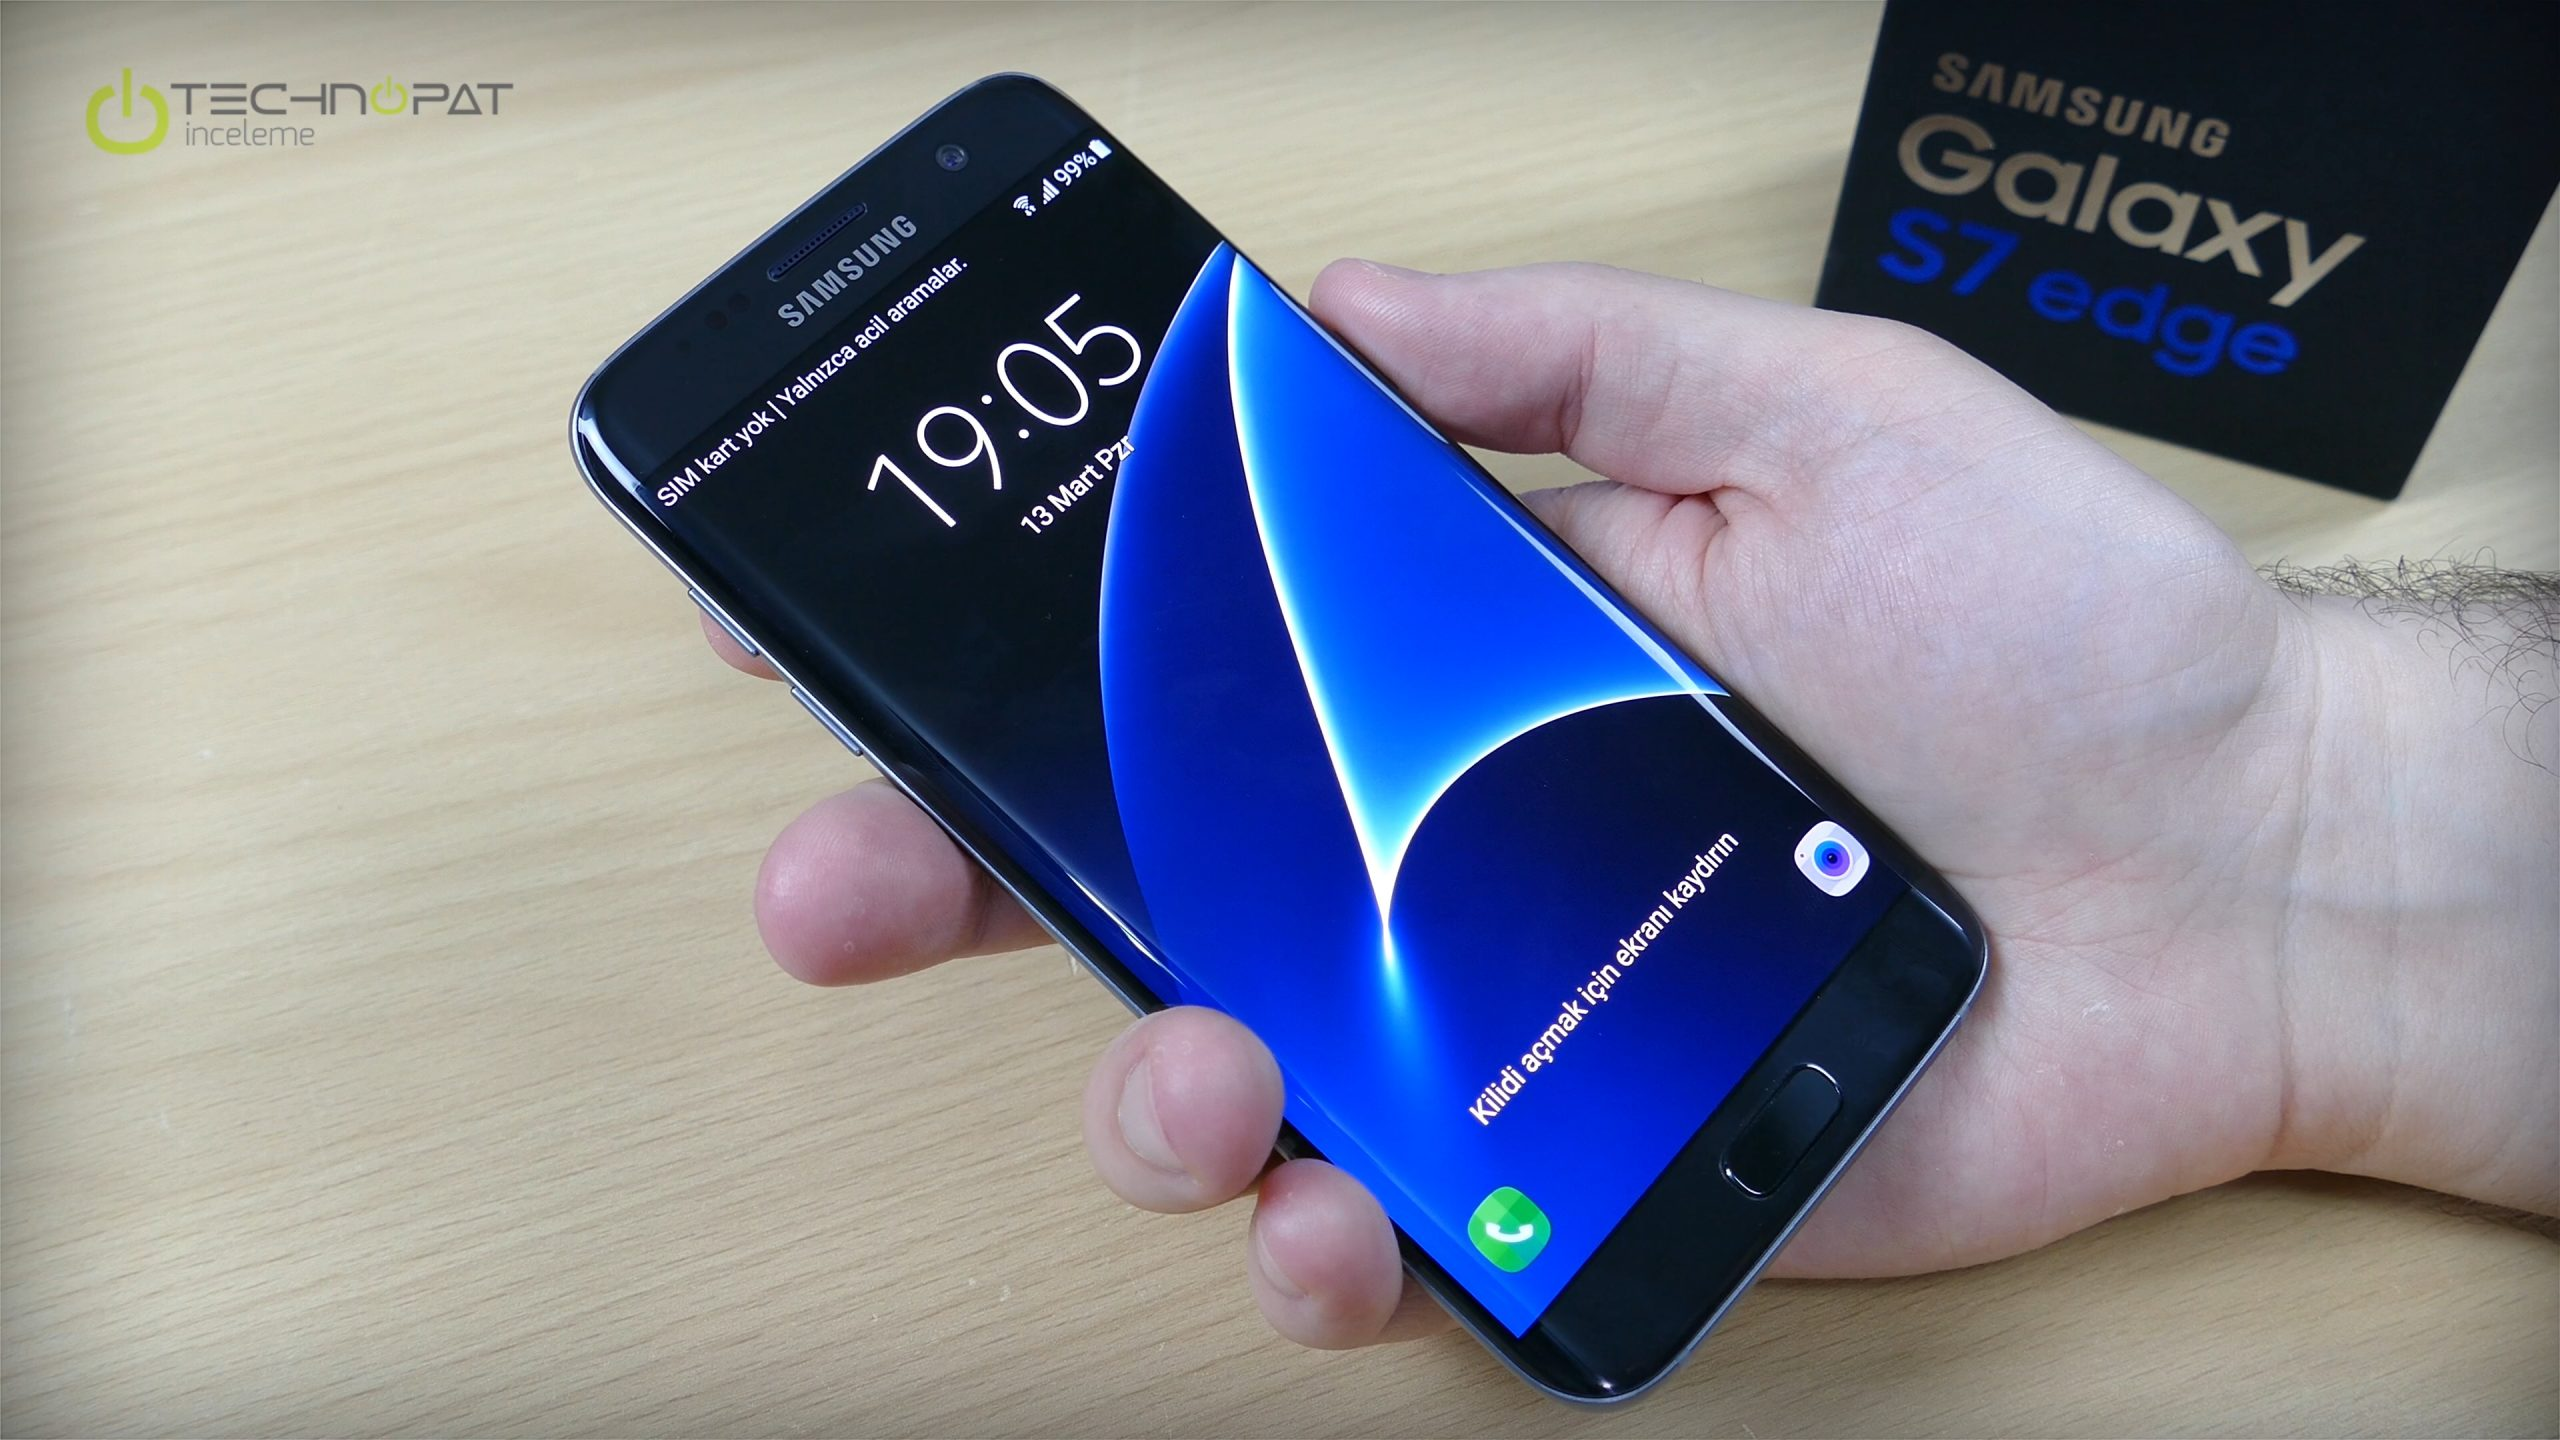 Samsung Galaxy S7 Edge İncelemesi